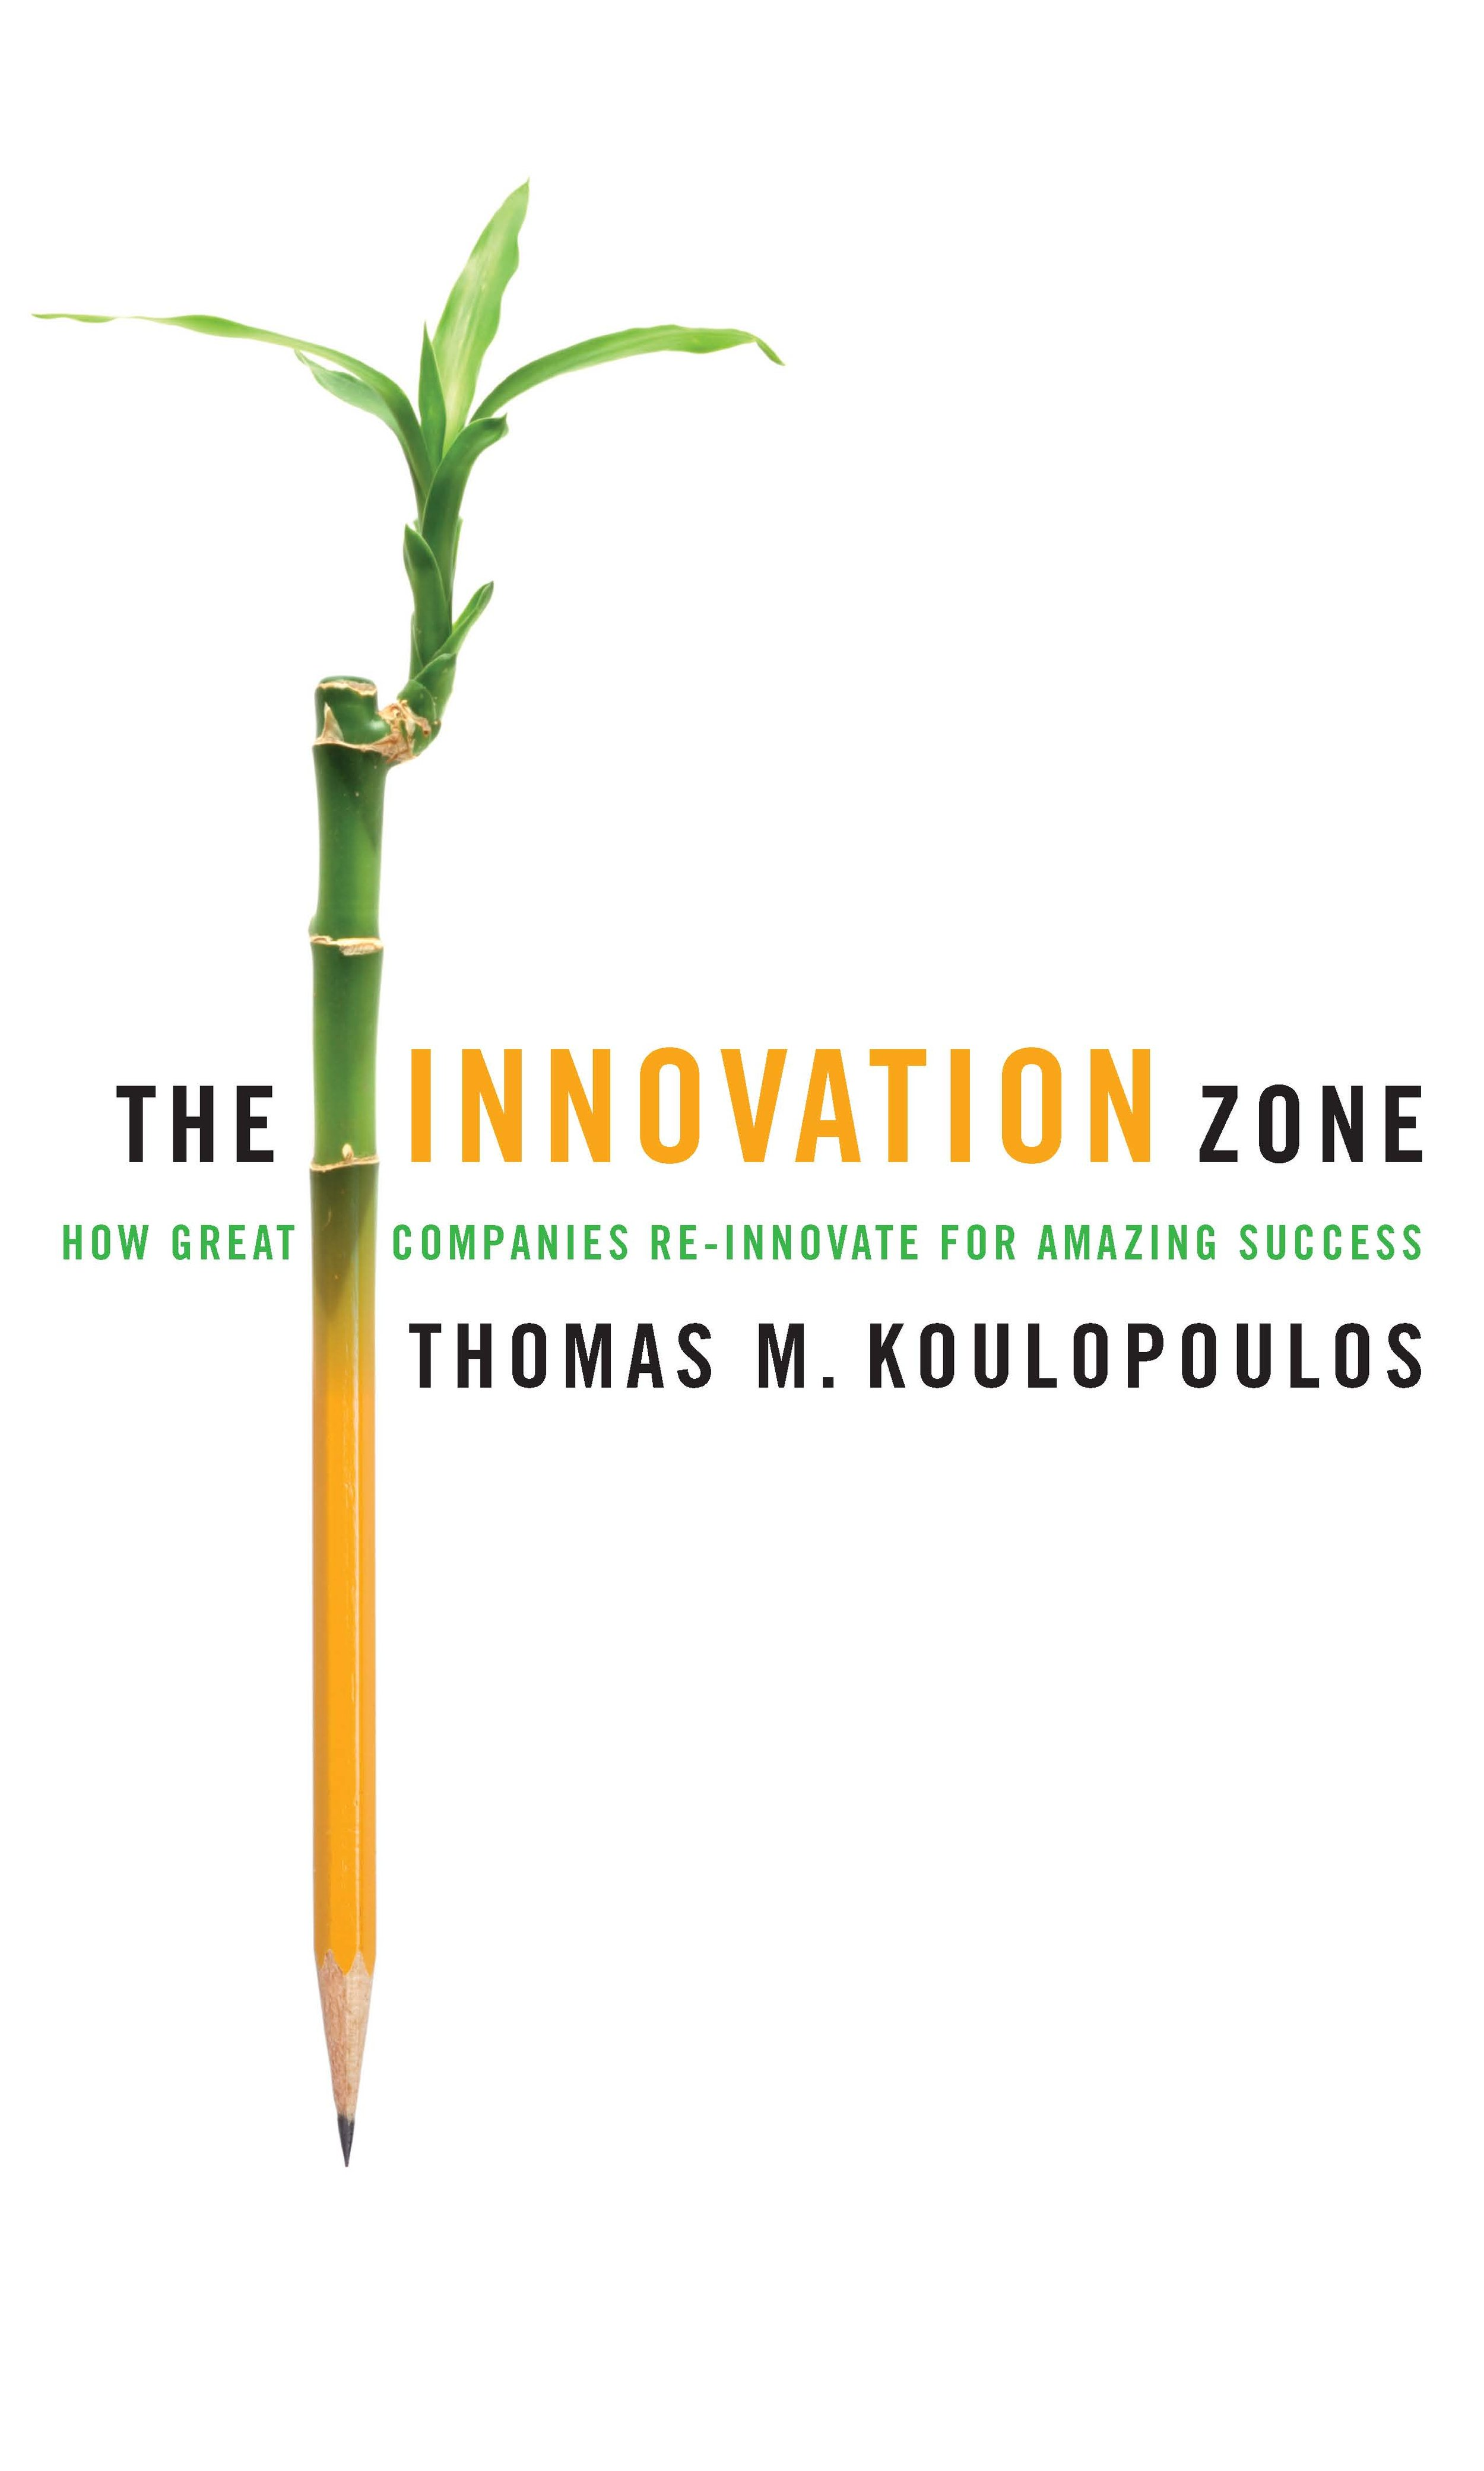 Innovation Zone hi-res (1).jpg